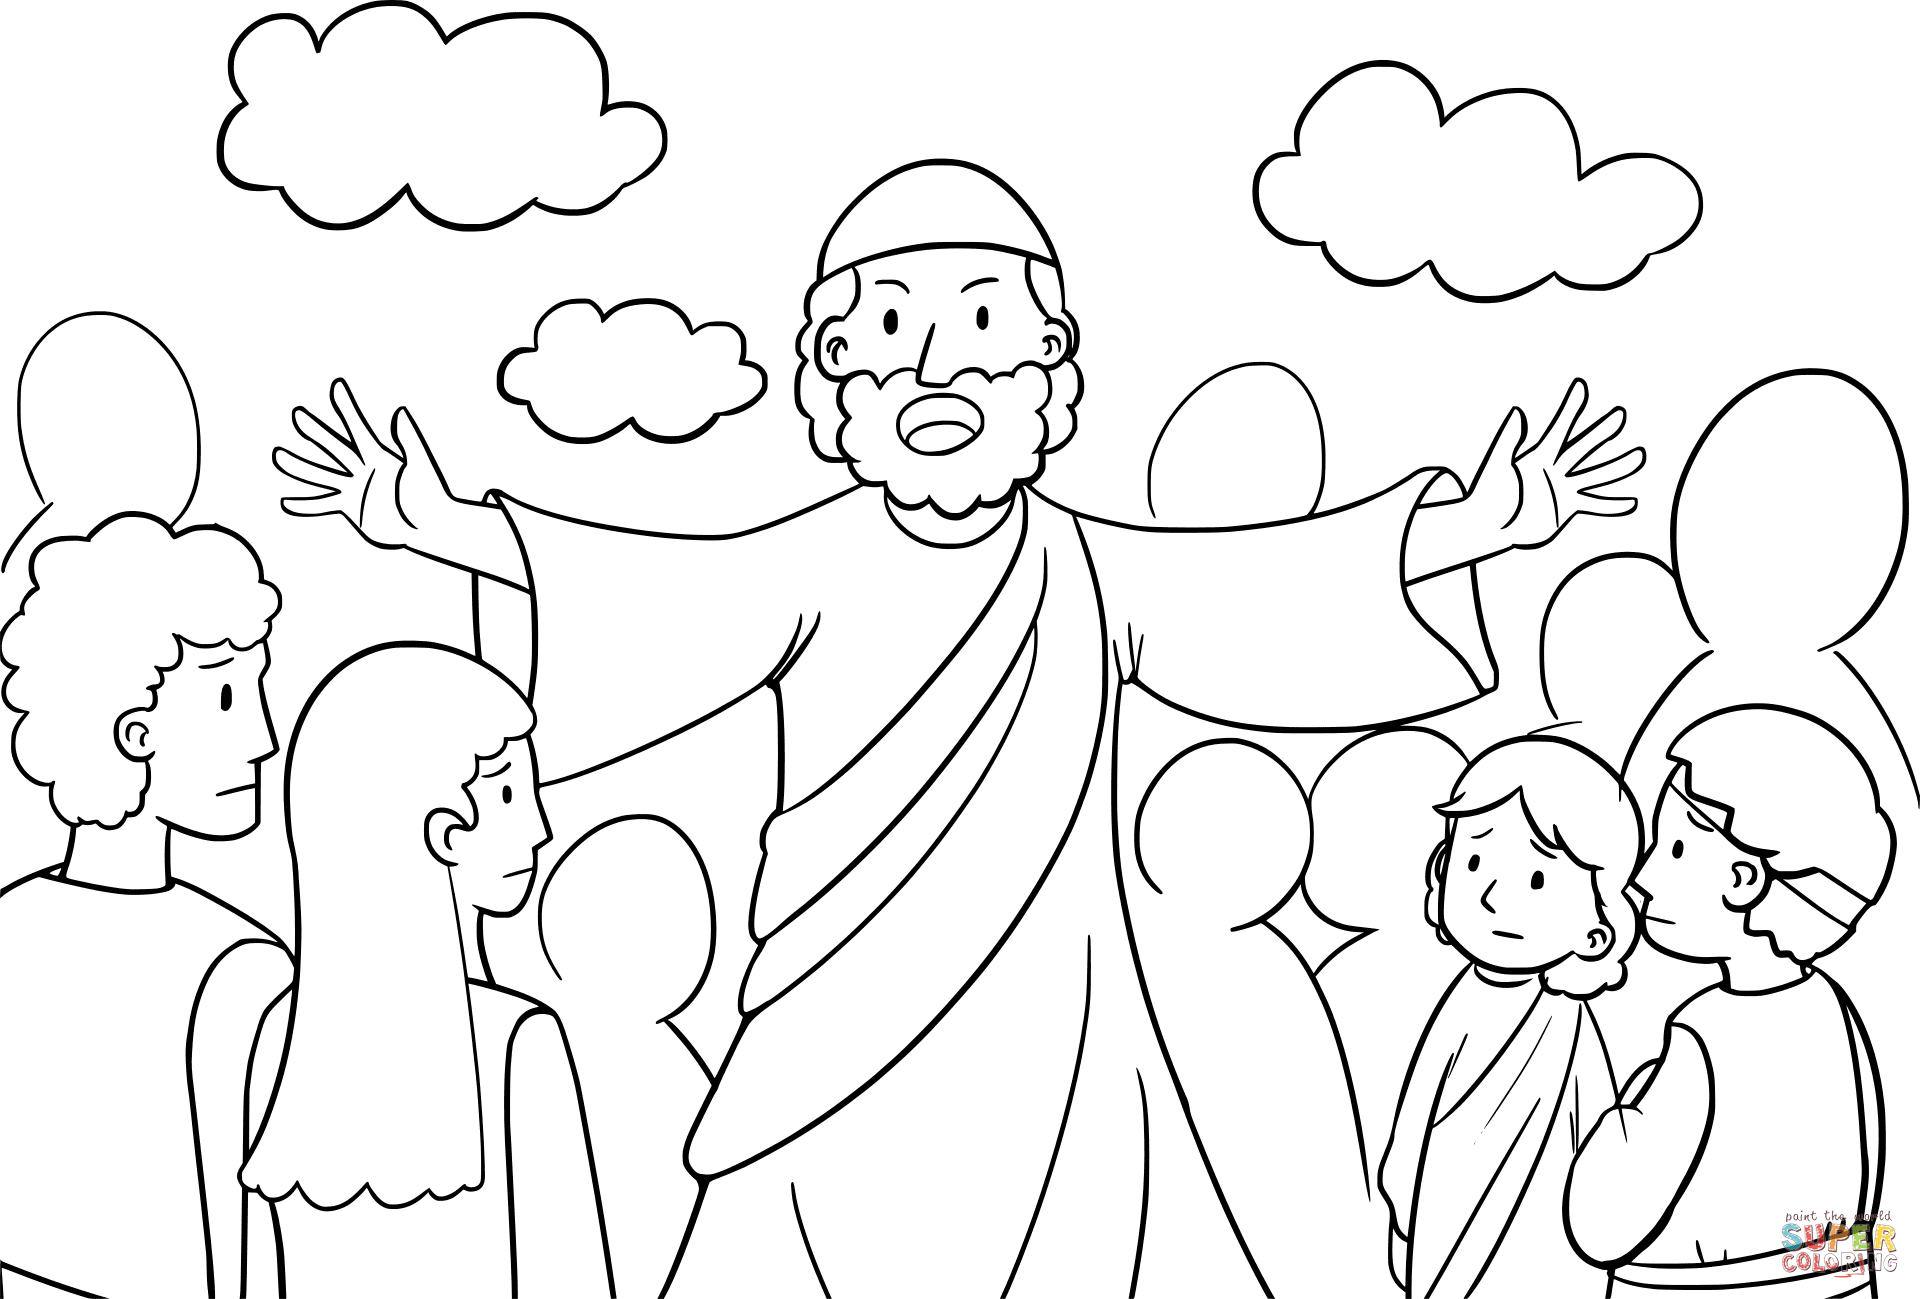 1920x1299 Moses Speaking To The Israelites Coloring Page Free Printable